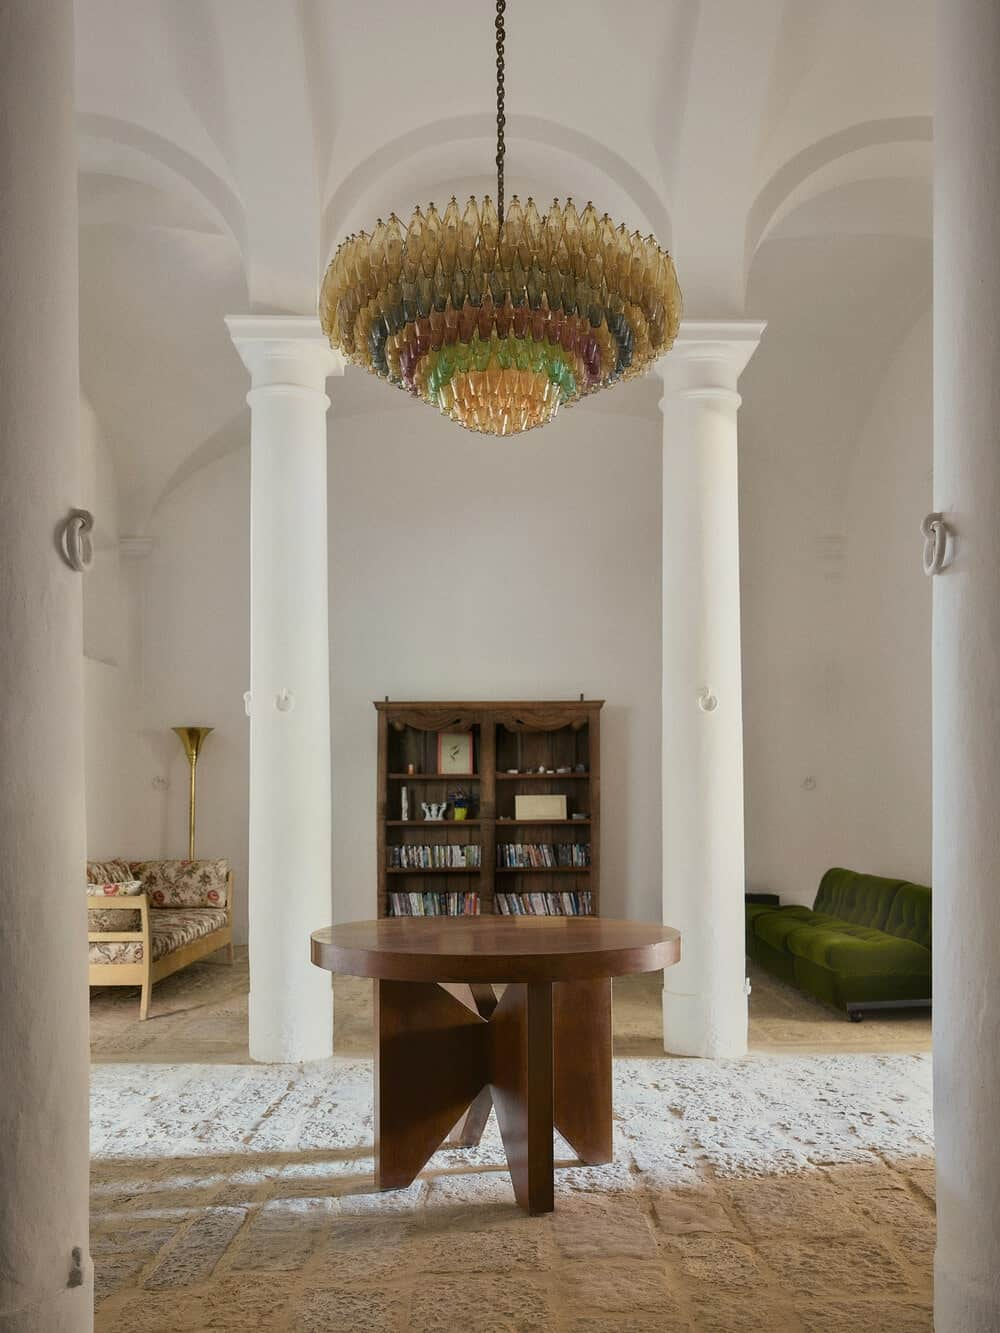 Upon entry of the house, you are welcomed by this foyer with a round wooden table, greek pillars and a decorative lighting above.